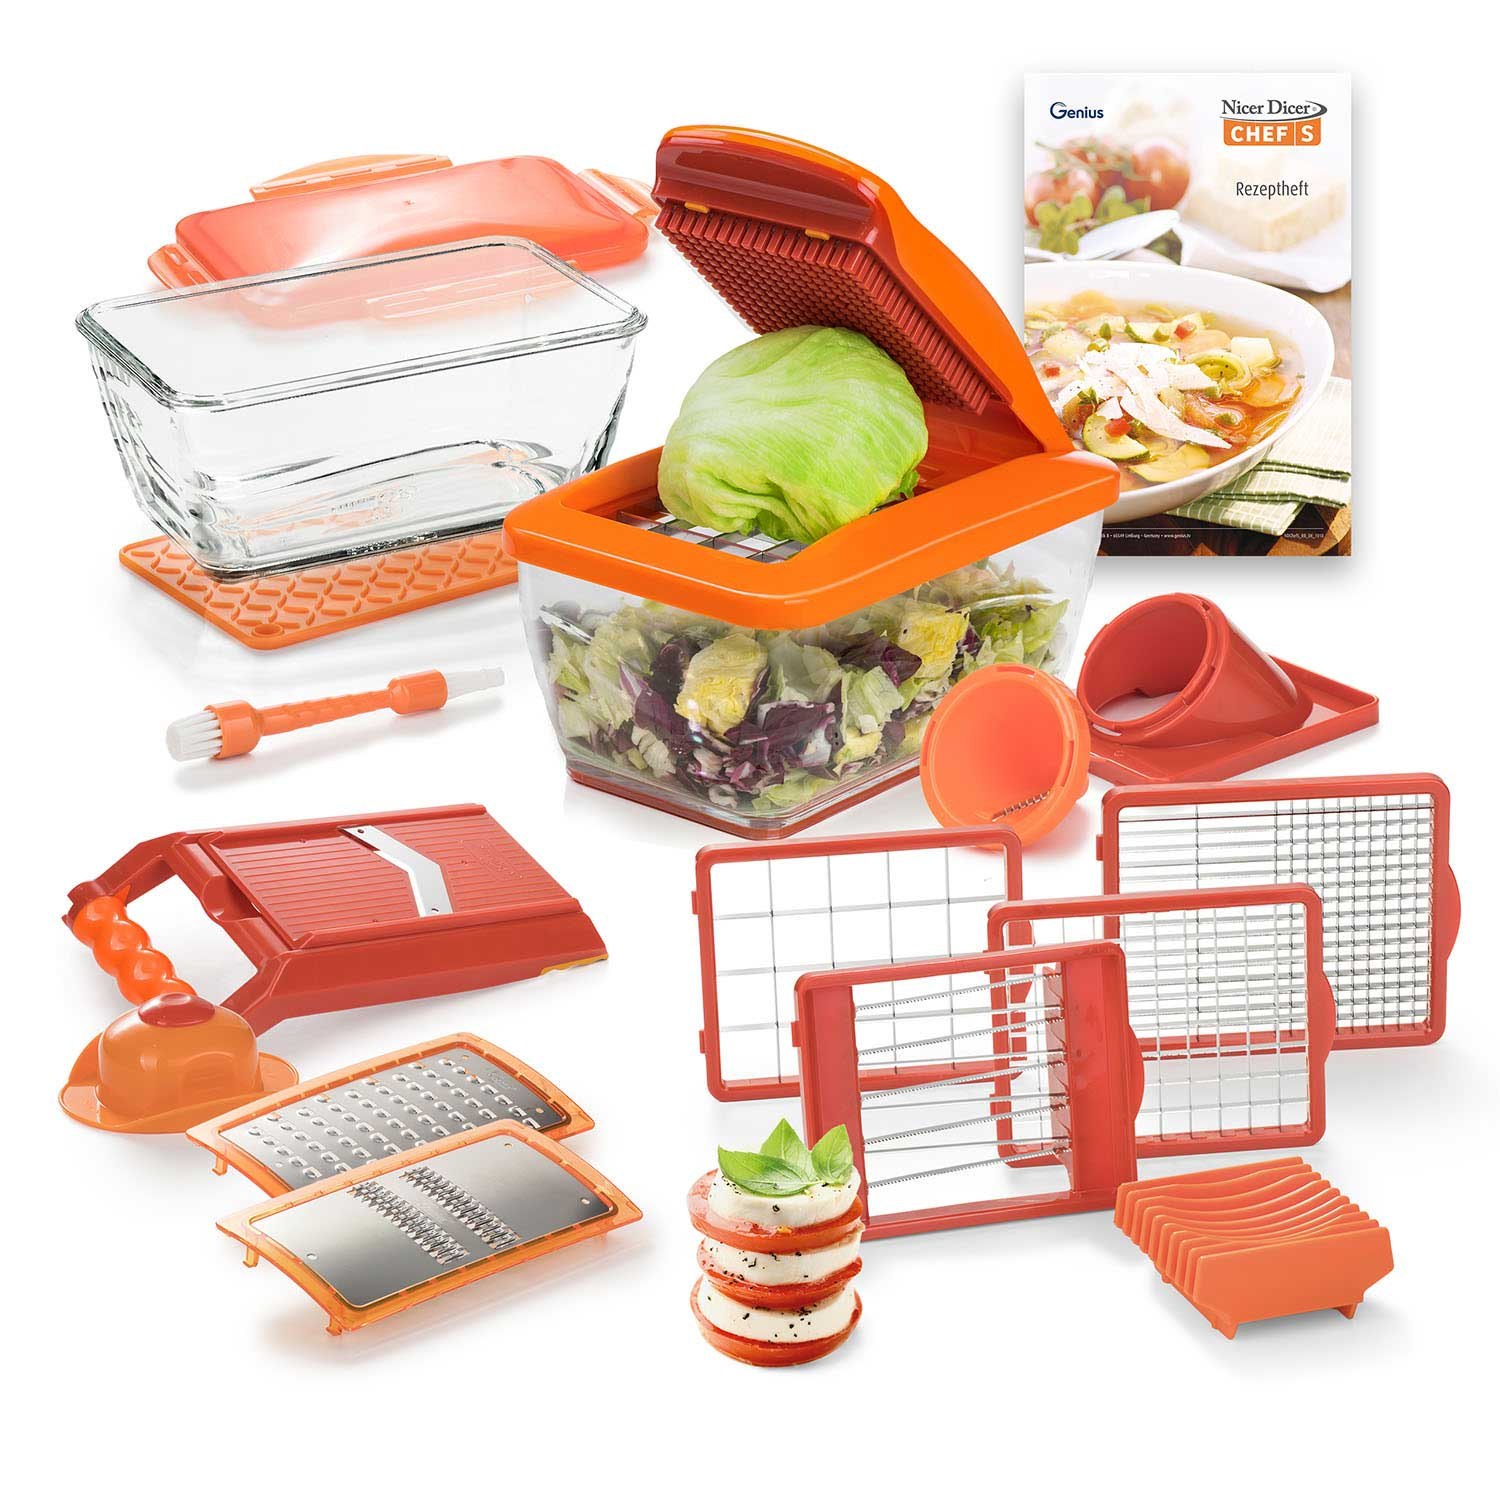 Nicer Dicer Chef S | Deluxe-Set 20-tlg.